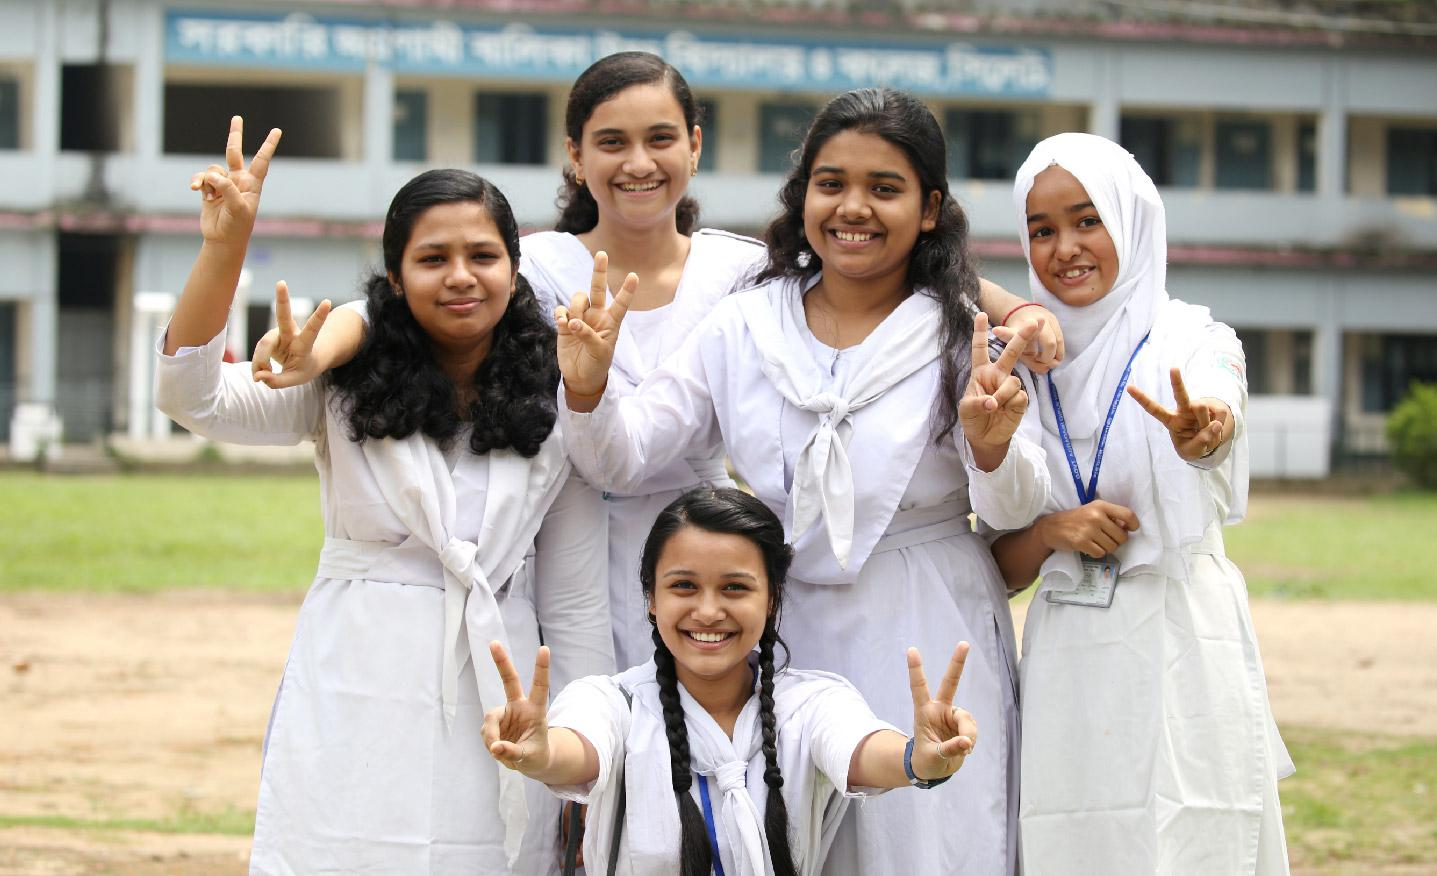 Advantages And Disadvantages Of Single Gender Education. Here Are Few Points To Consider